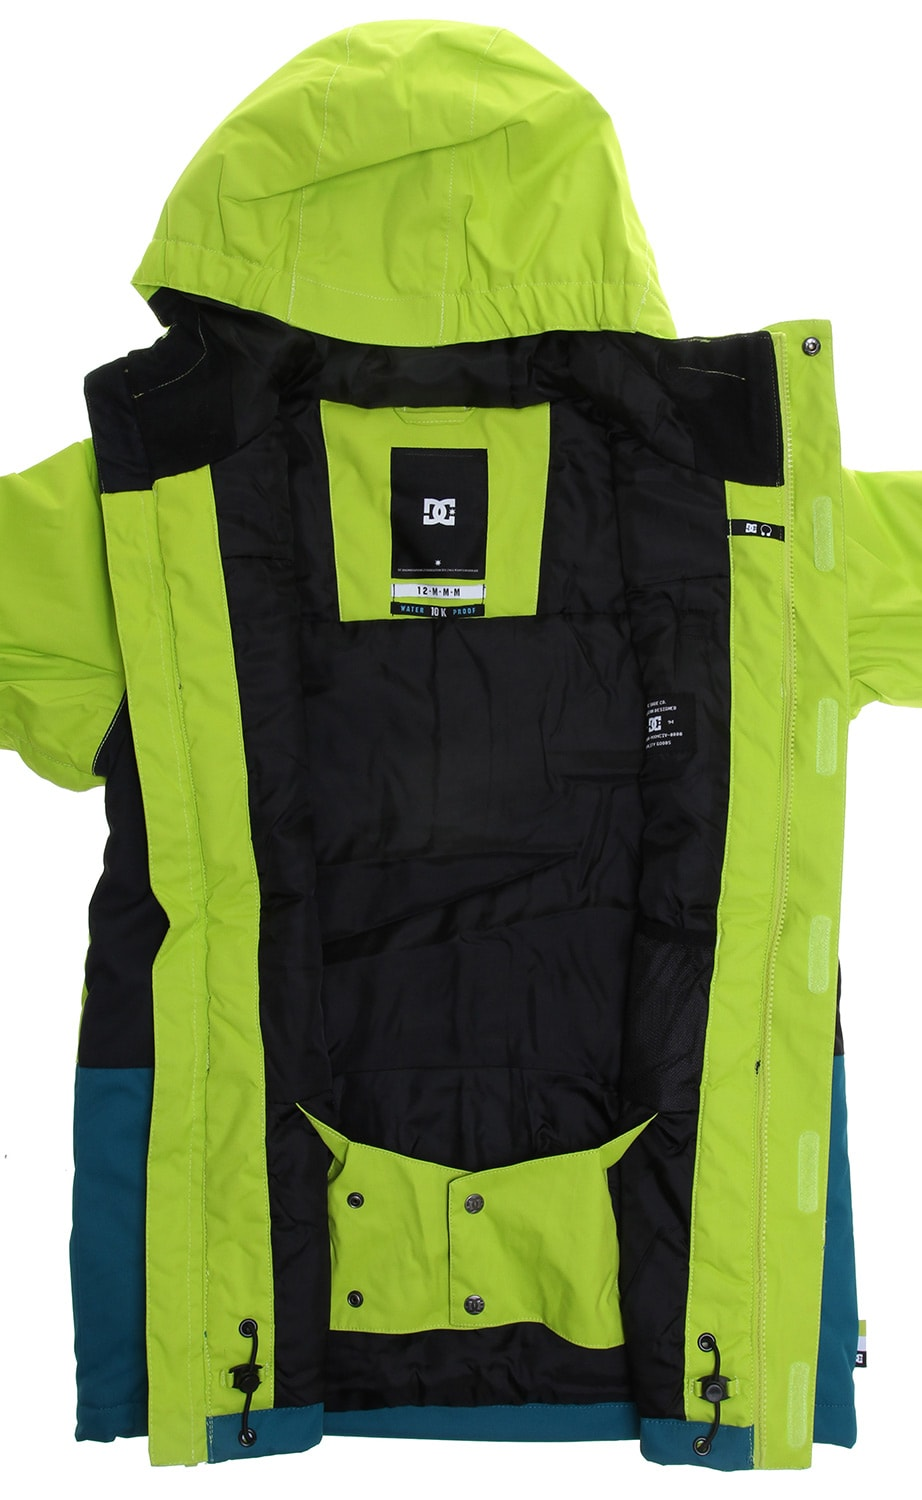 Ski jackets for kids are a necessity in cold winter weather. If you live in an area that gets snow at least once each year, then your child should own a warm coat – and ski jackets are ideal! What differentiates kid's ski jackets from winter coats are the ski specific features.